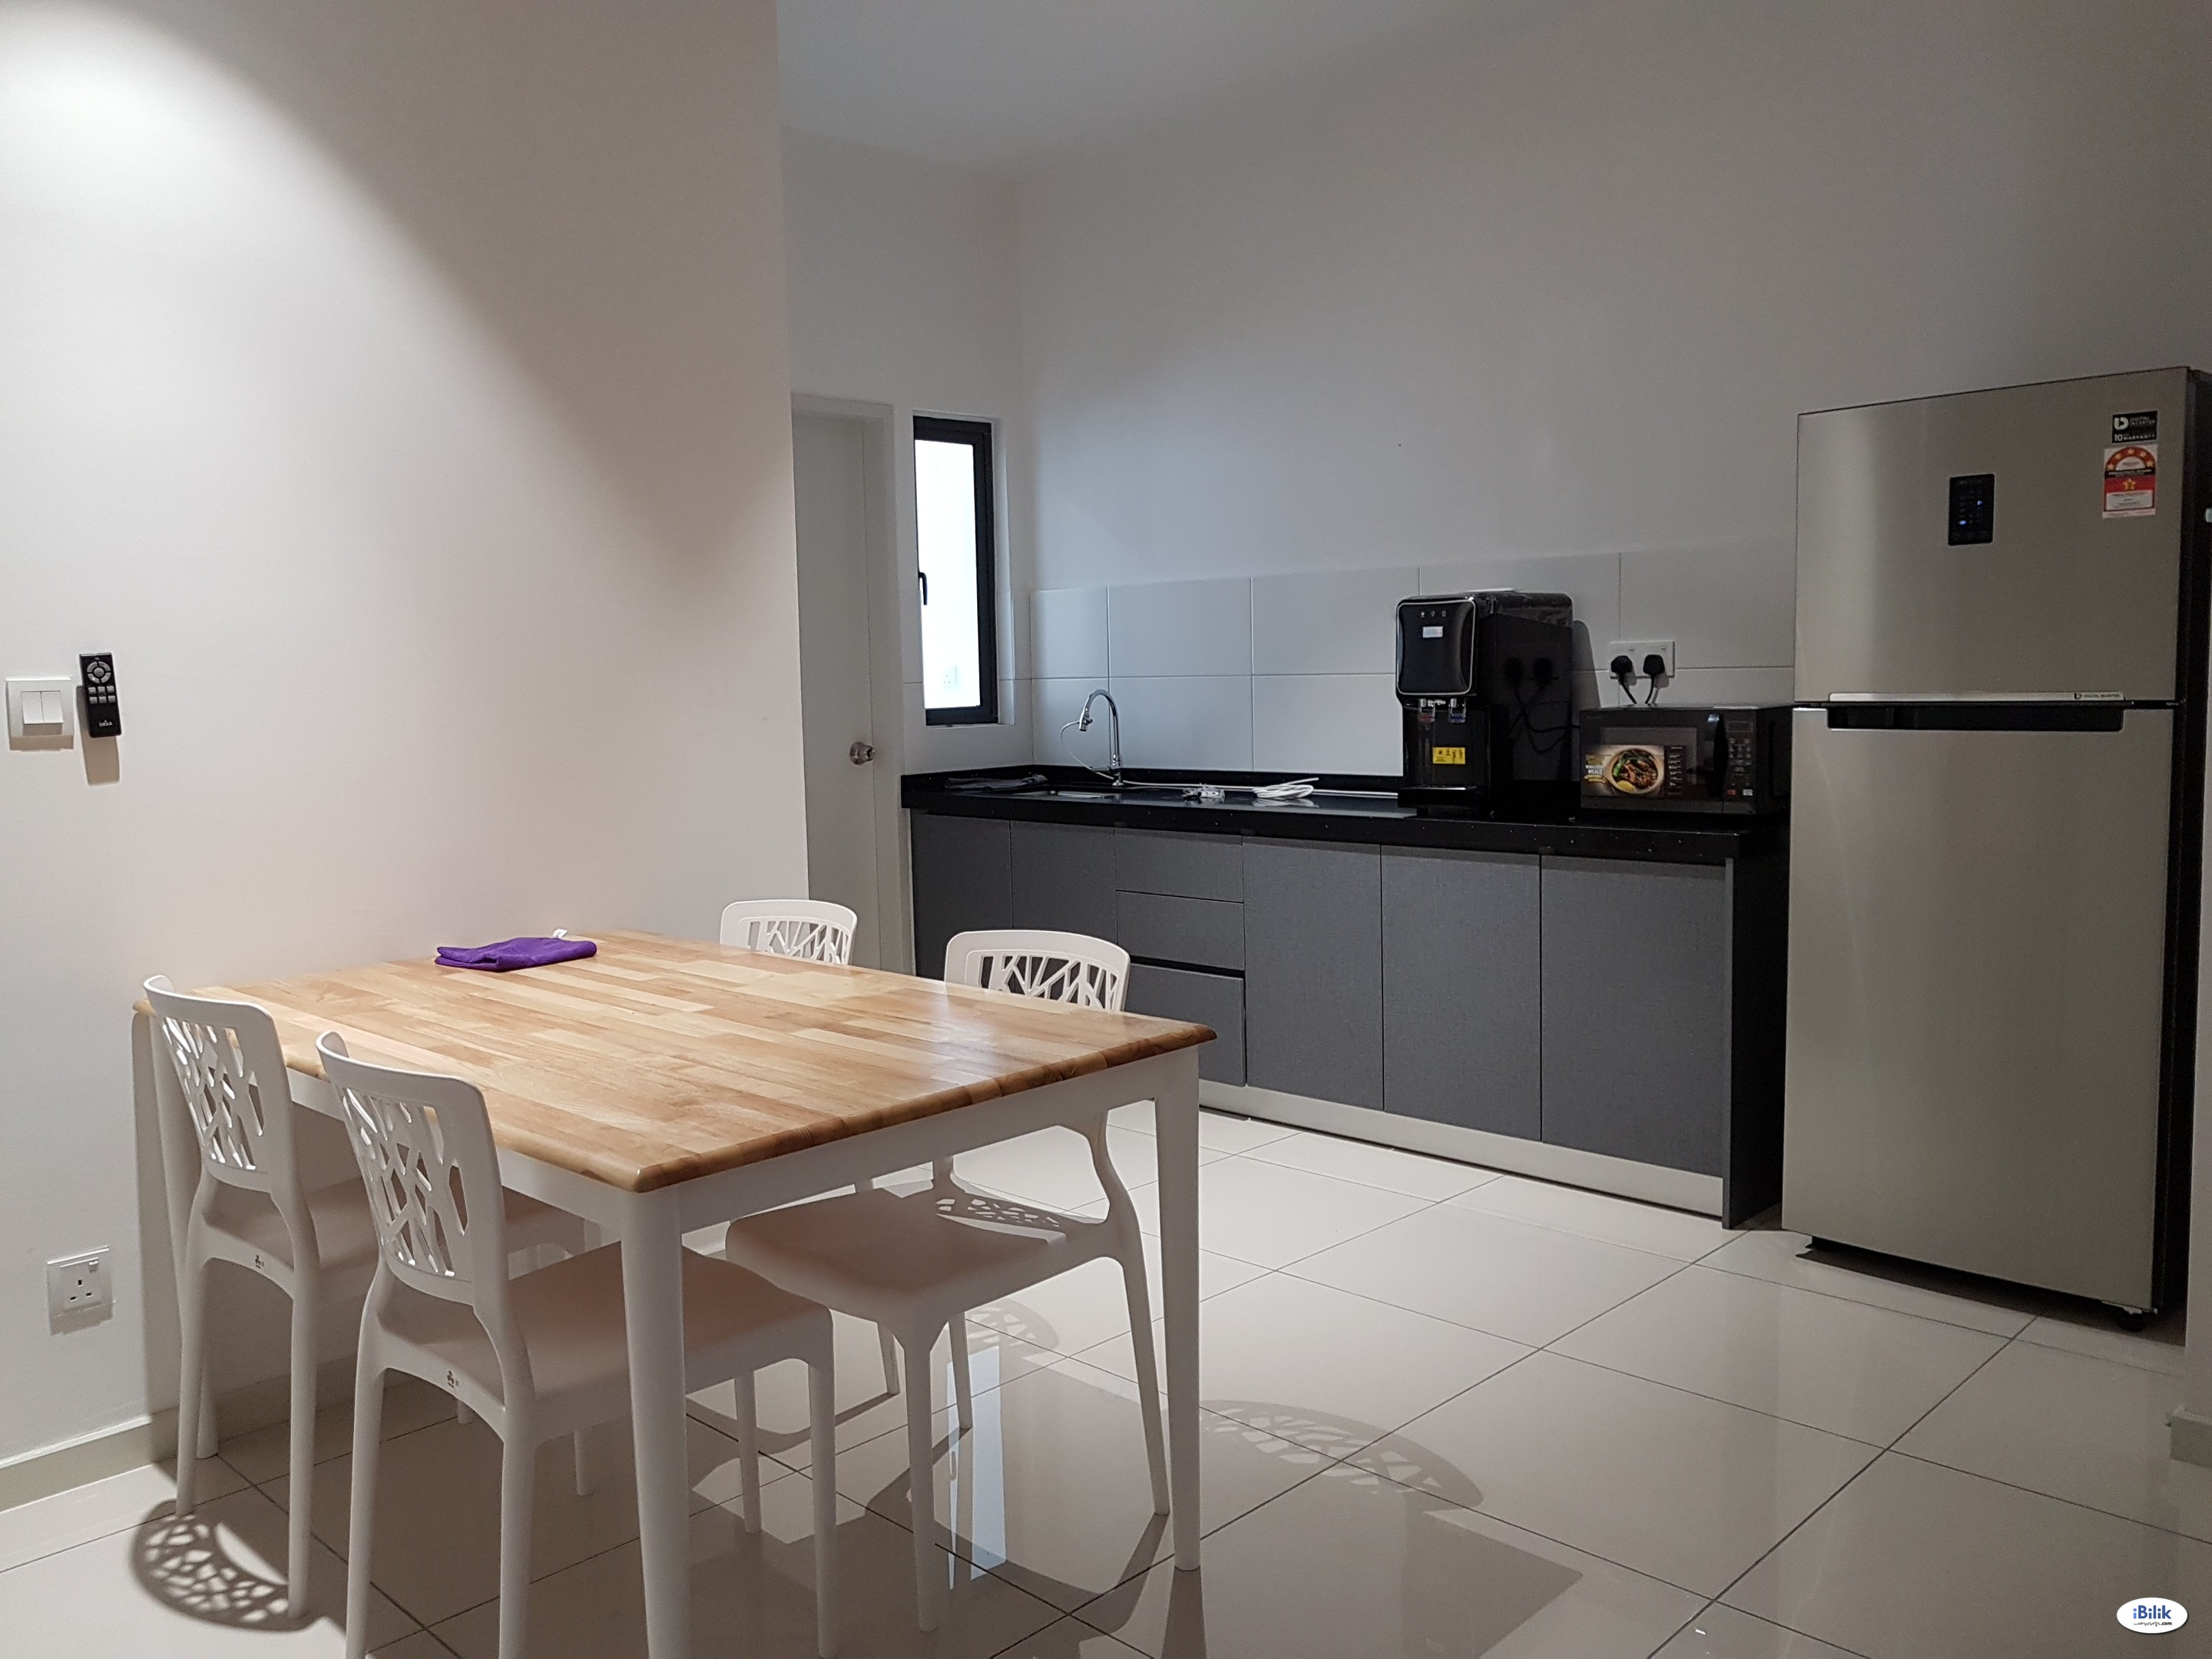 Big ROOM Offer- Wifi and Water Filter! 400m to LRT, restaurants